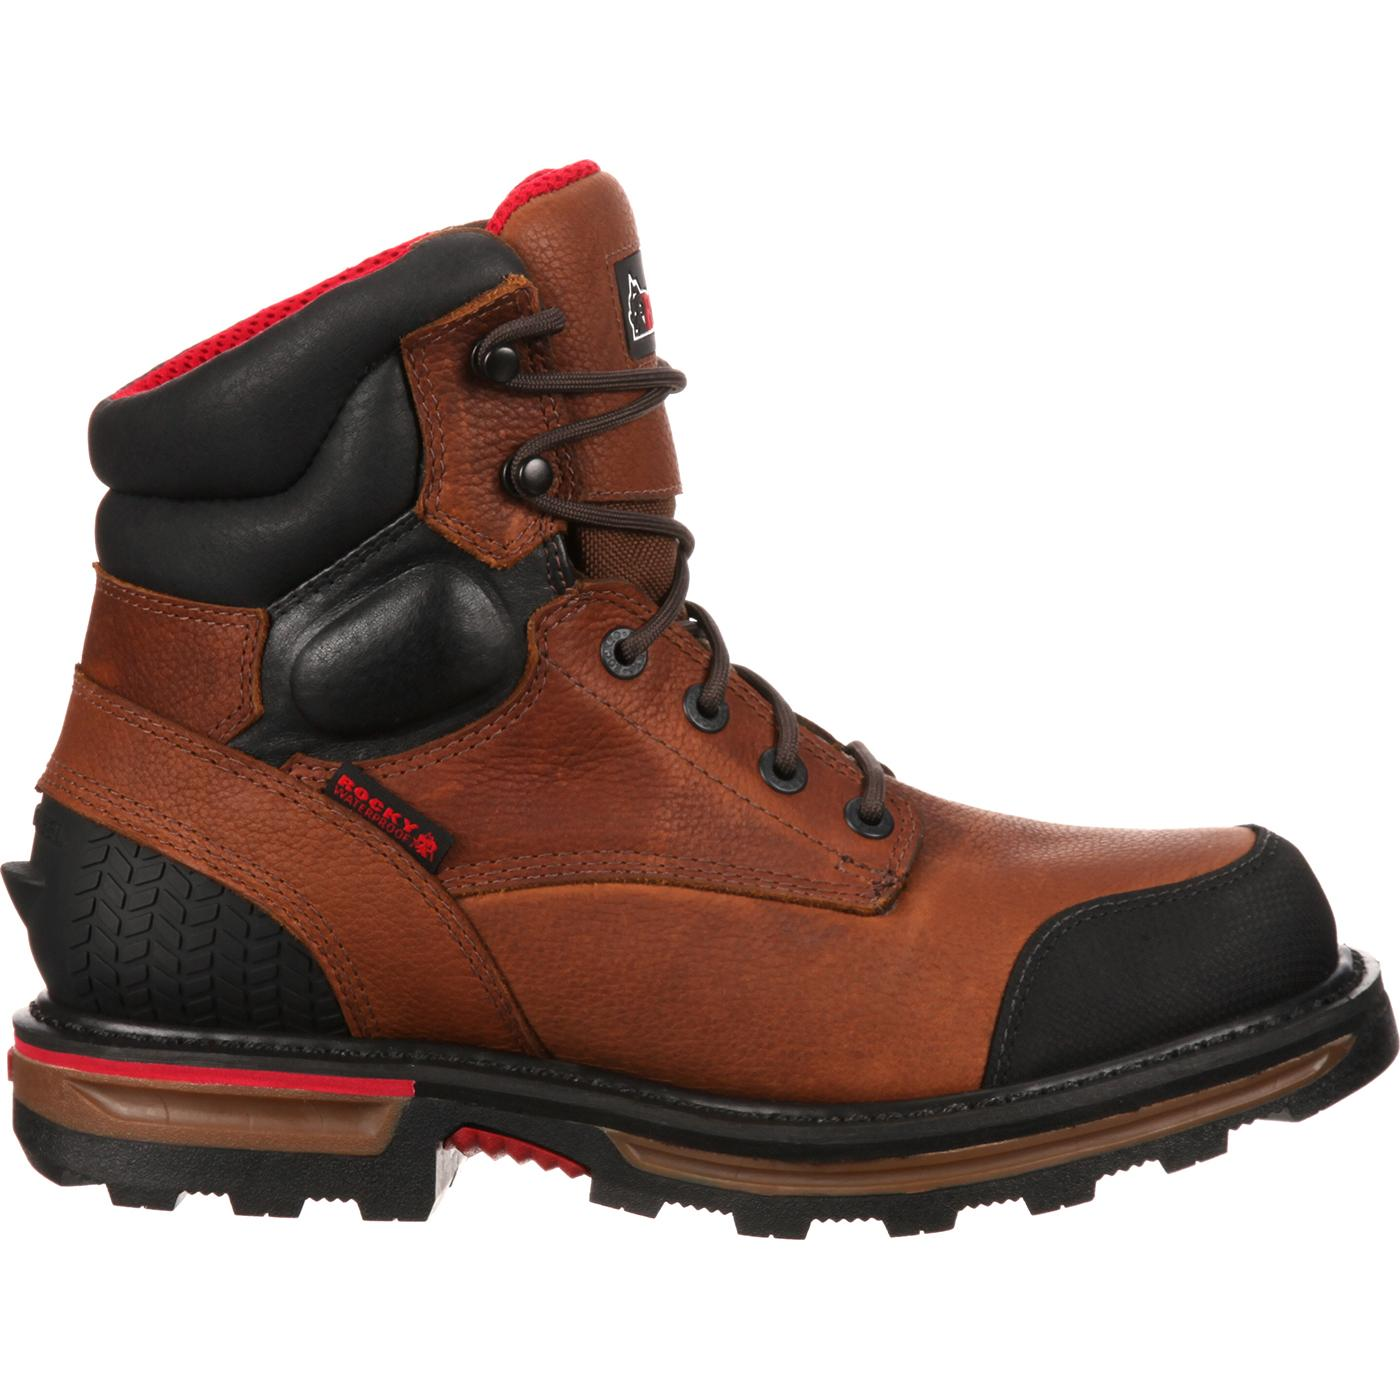 rocky elements dirt waterproof work boot rkyk073